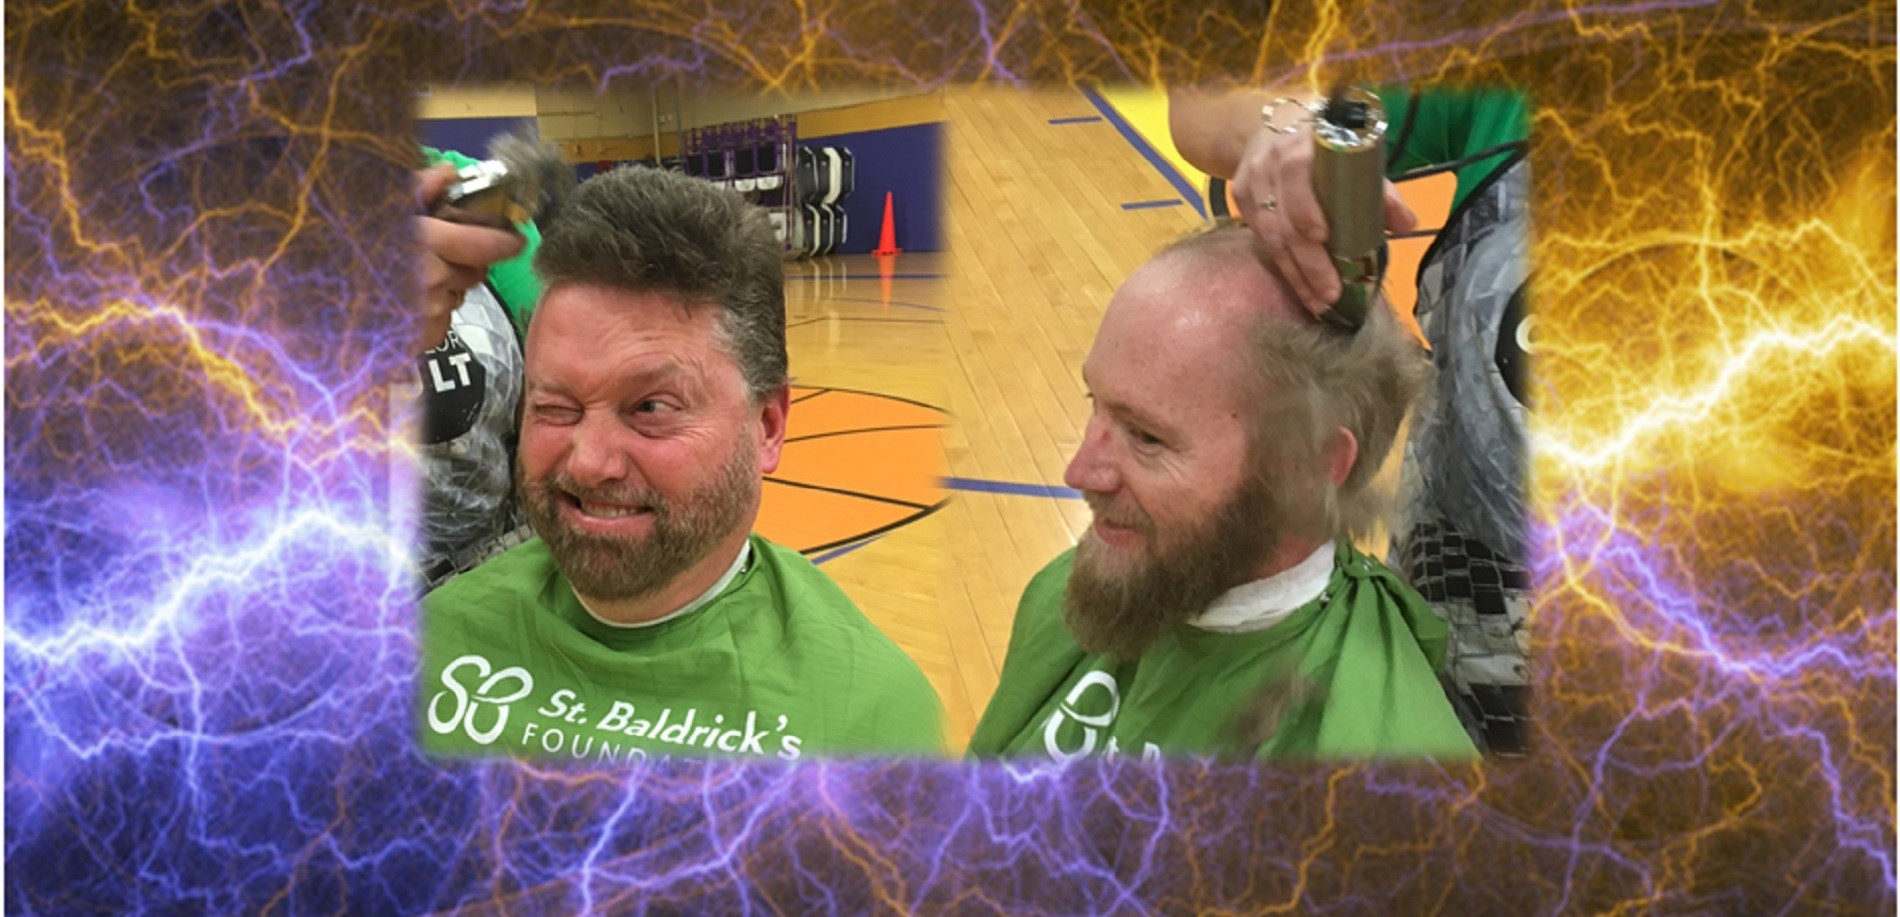 Mr. Martin (left) & Mr. Sarver (right) Volunteer for the St. Baldricks Shavedown Donation Drive to Benefit Cancer Research for Children.